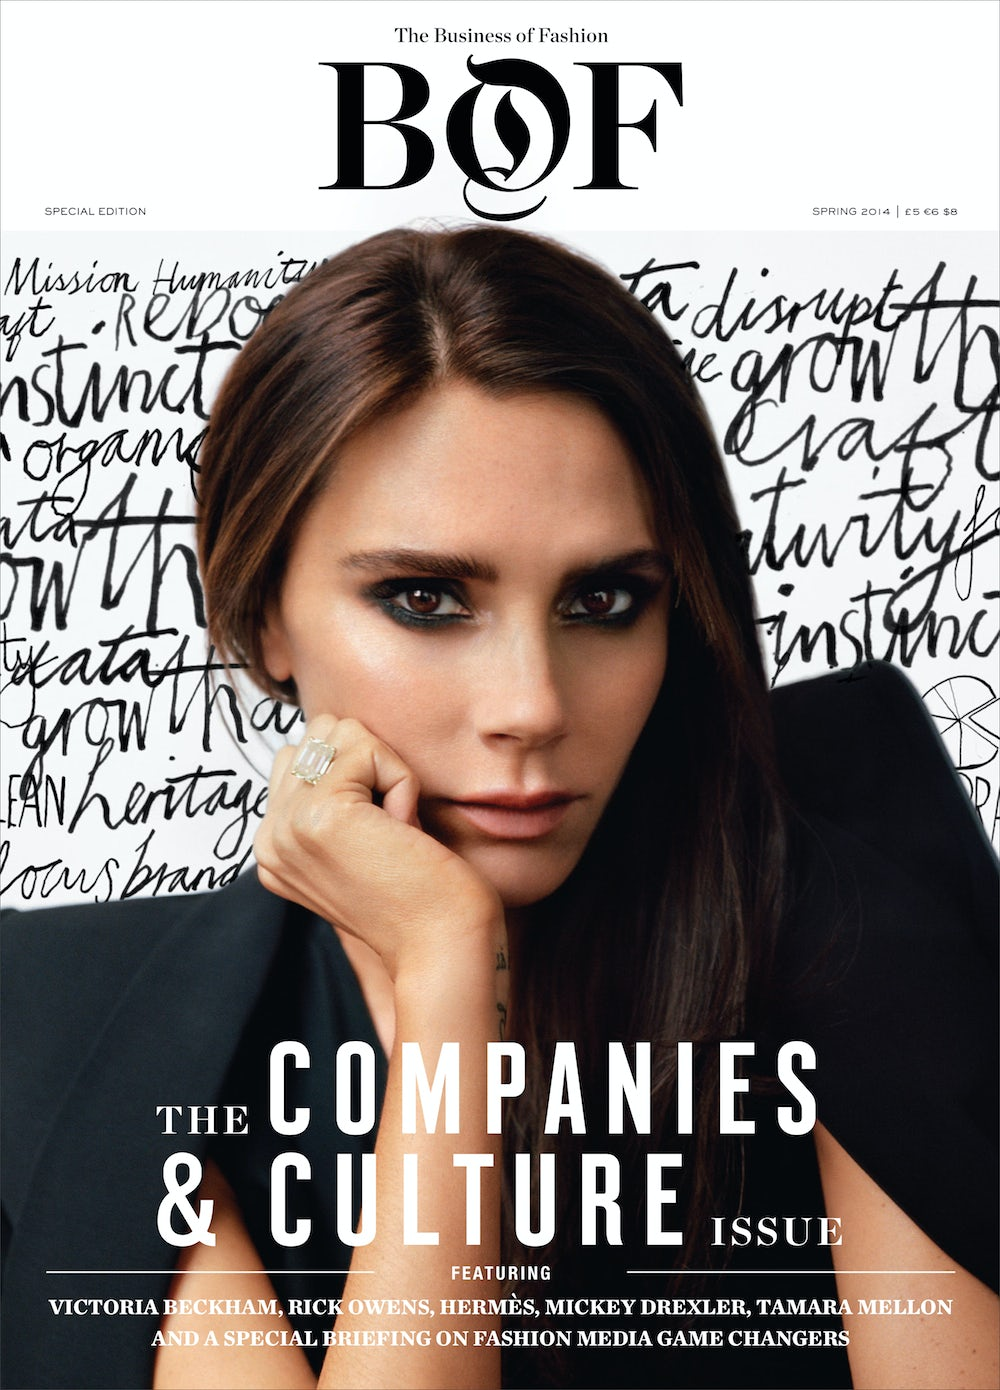 The Business of Fashion, Companies and Culture Issue | Cover photo: Alasdair McLellan